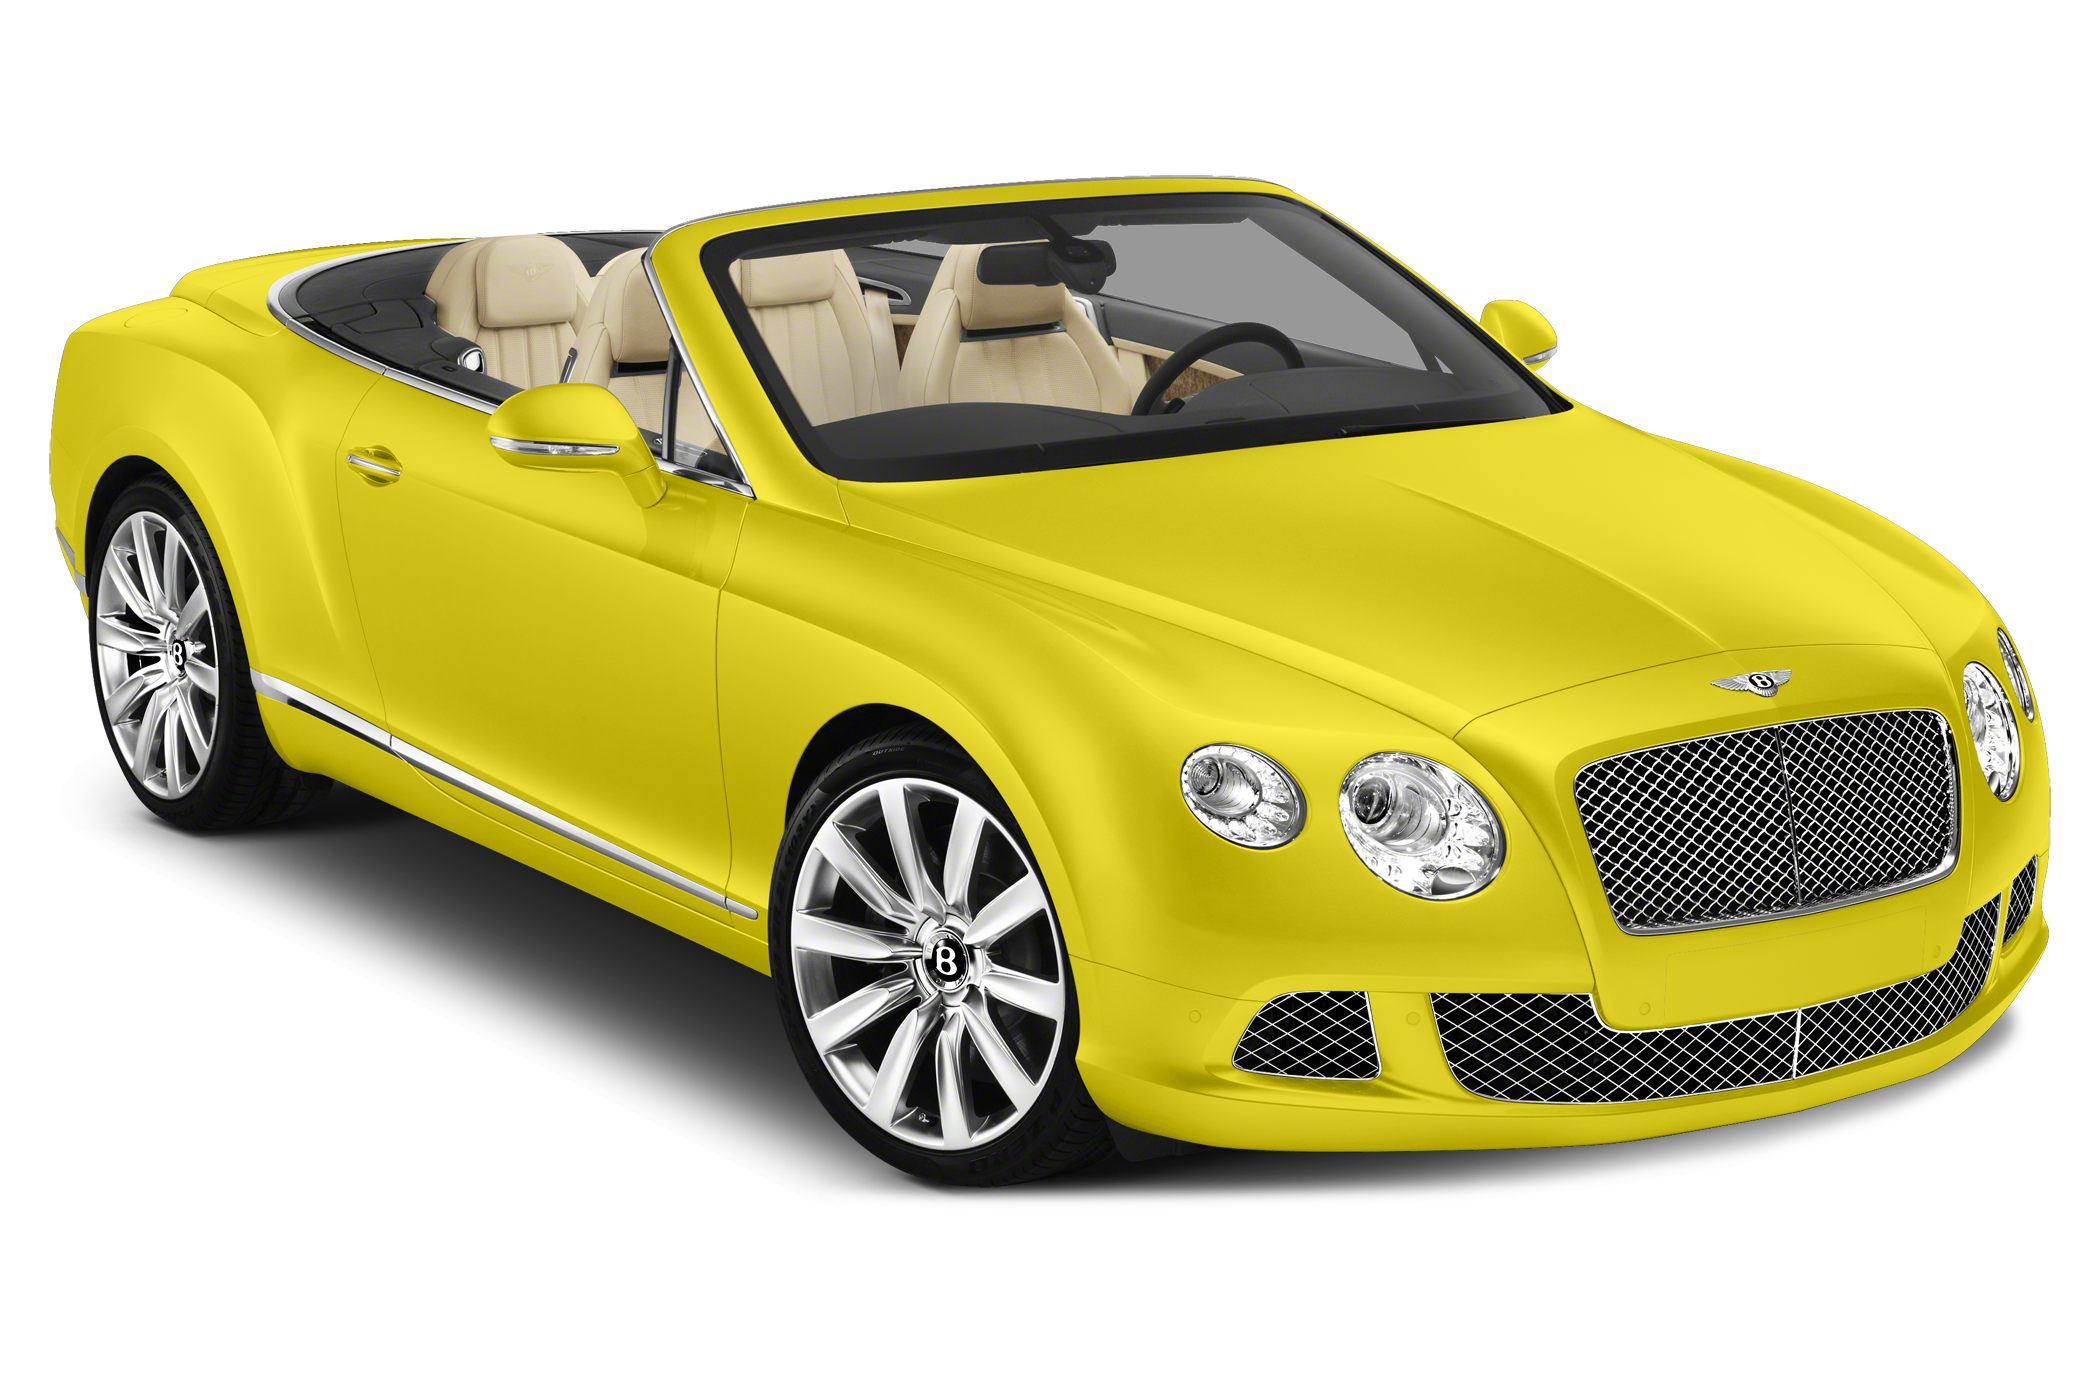 2015 Bentley Continental GTC Base Convertible for sale in Miami for $256,370 with 19 miles